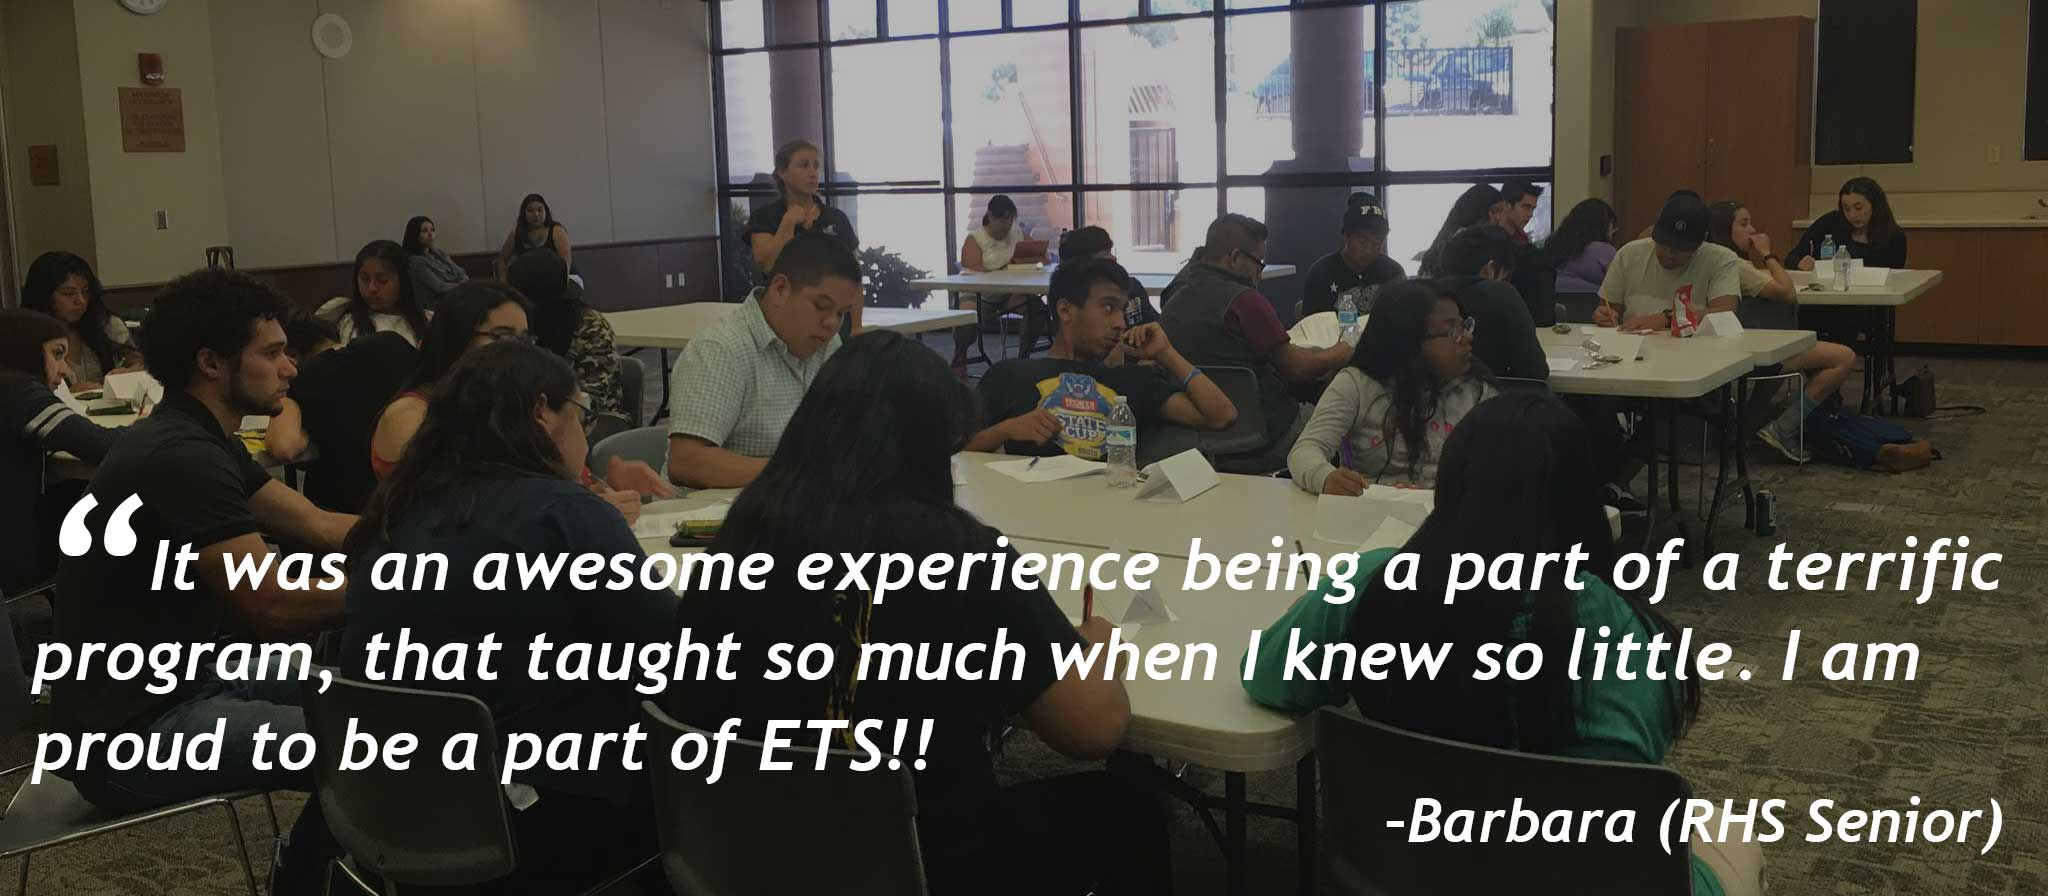 """It was an awesome experience being a part of a terrific program, that taught so much when I knew so little. I am proud to be a part of ETS!!"" -Barbara (RHS Senior)"